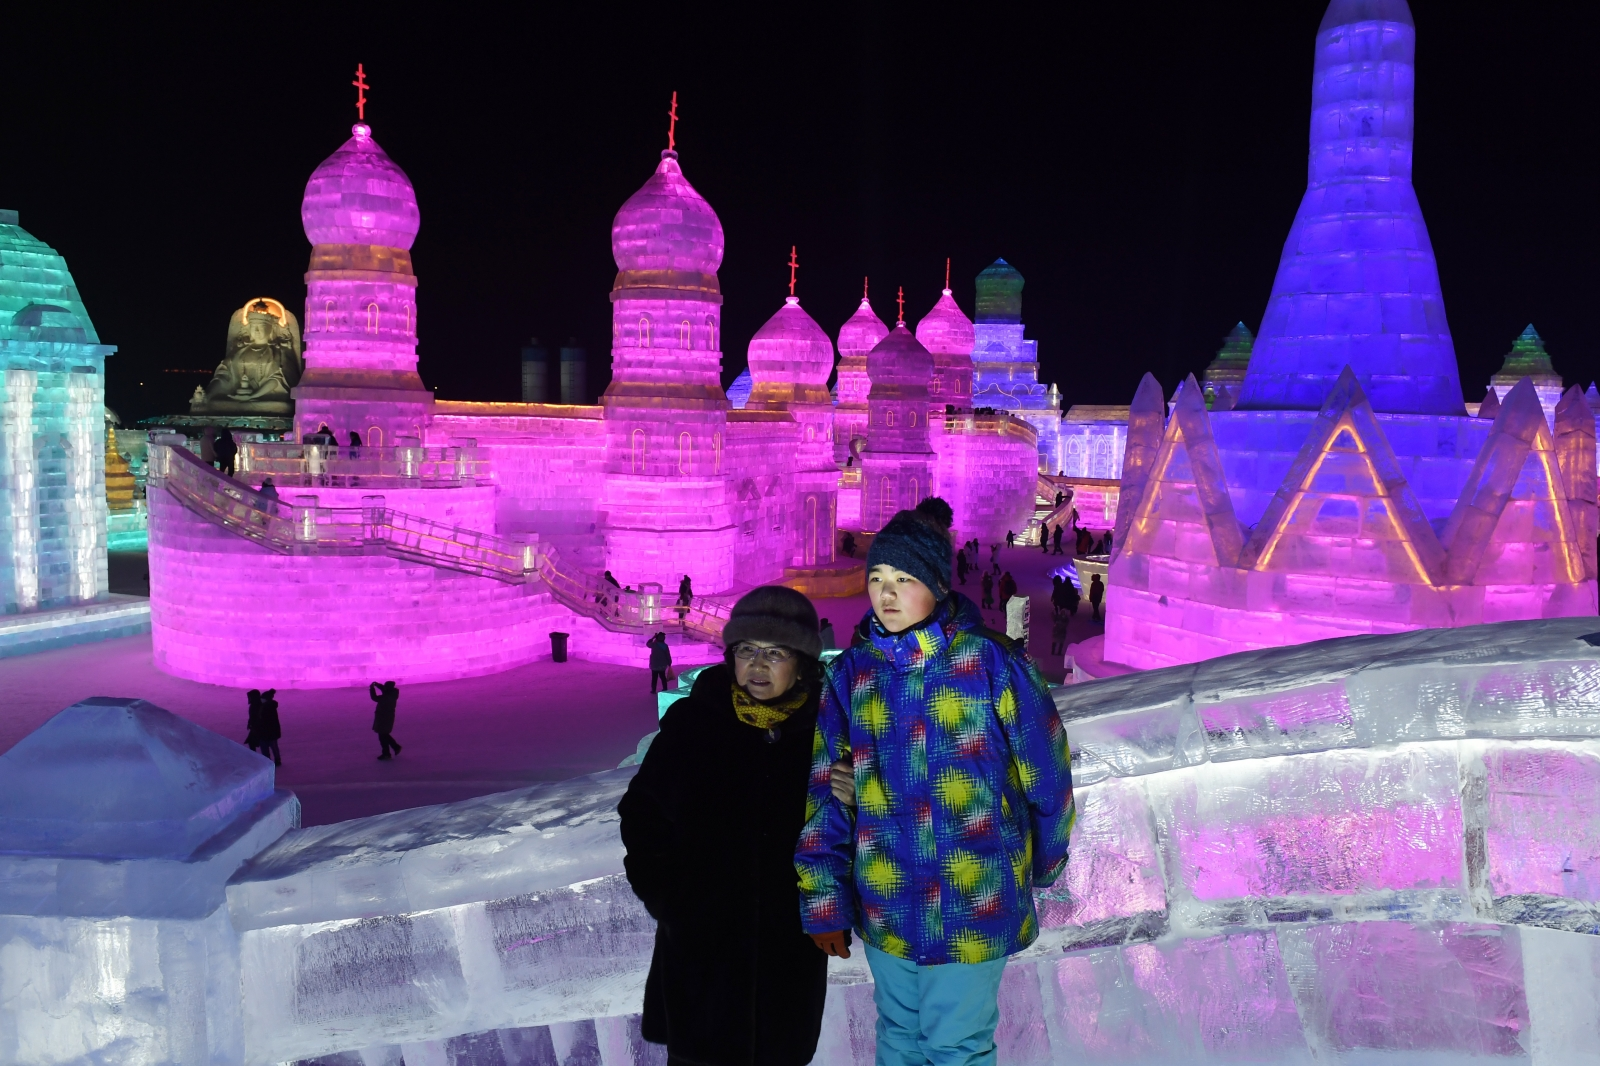 Harbin ice snow sculpture festival